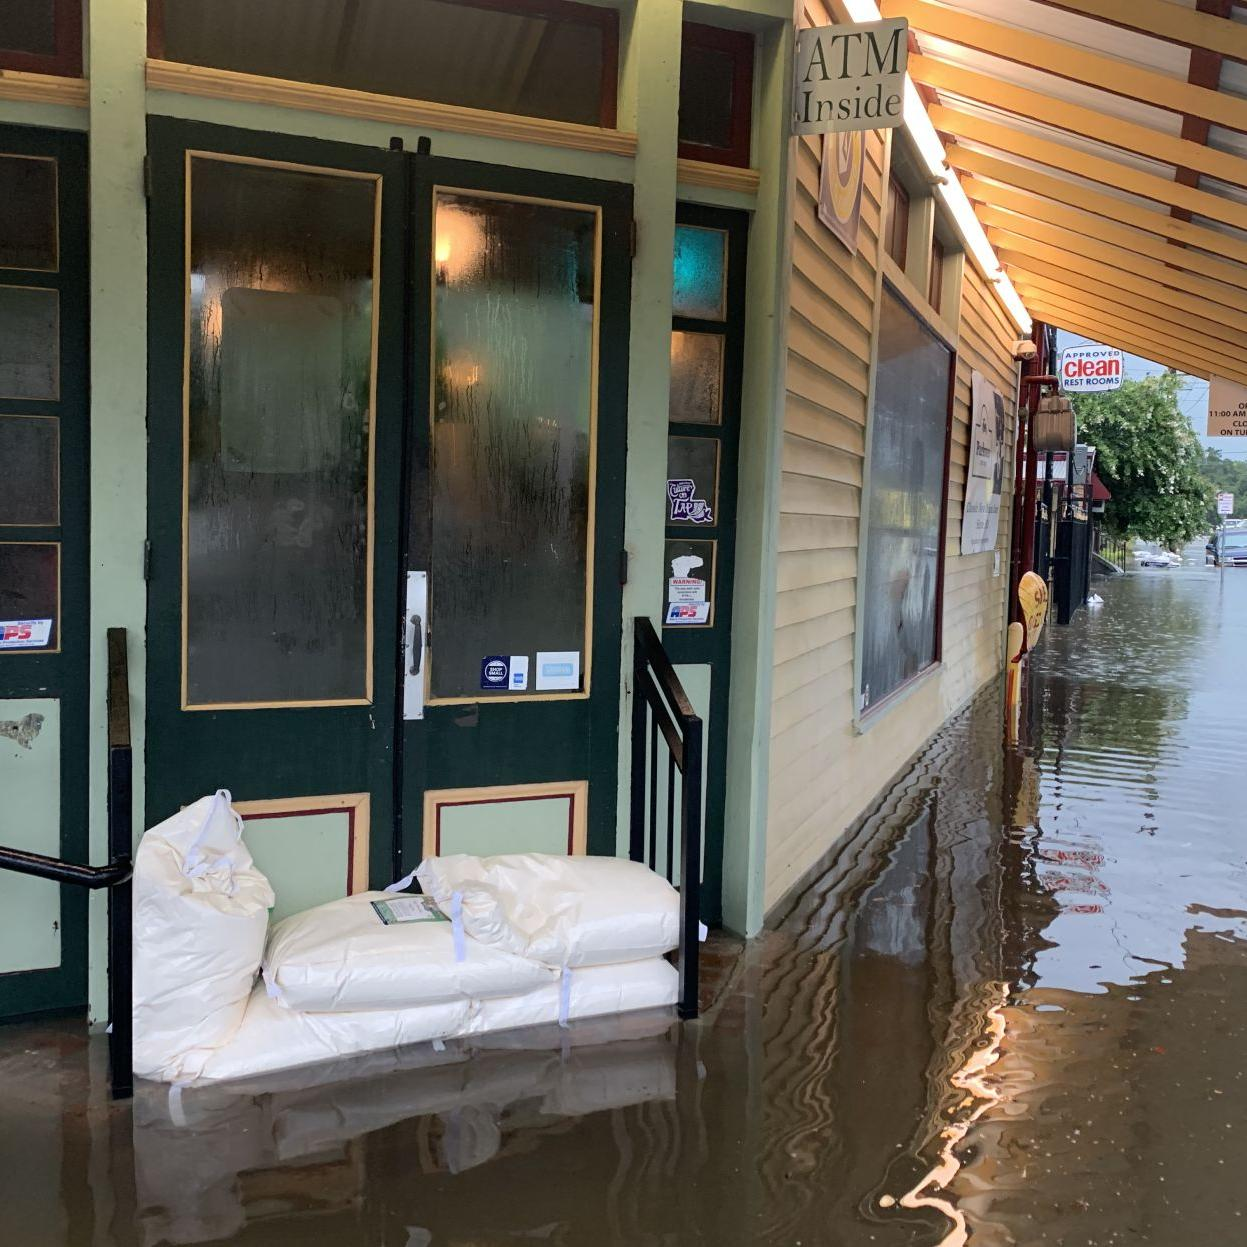 How restaurants, bars, and more across New Orleans held off